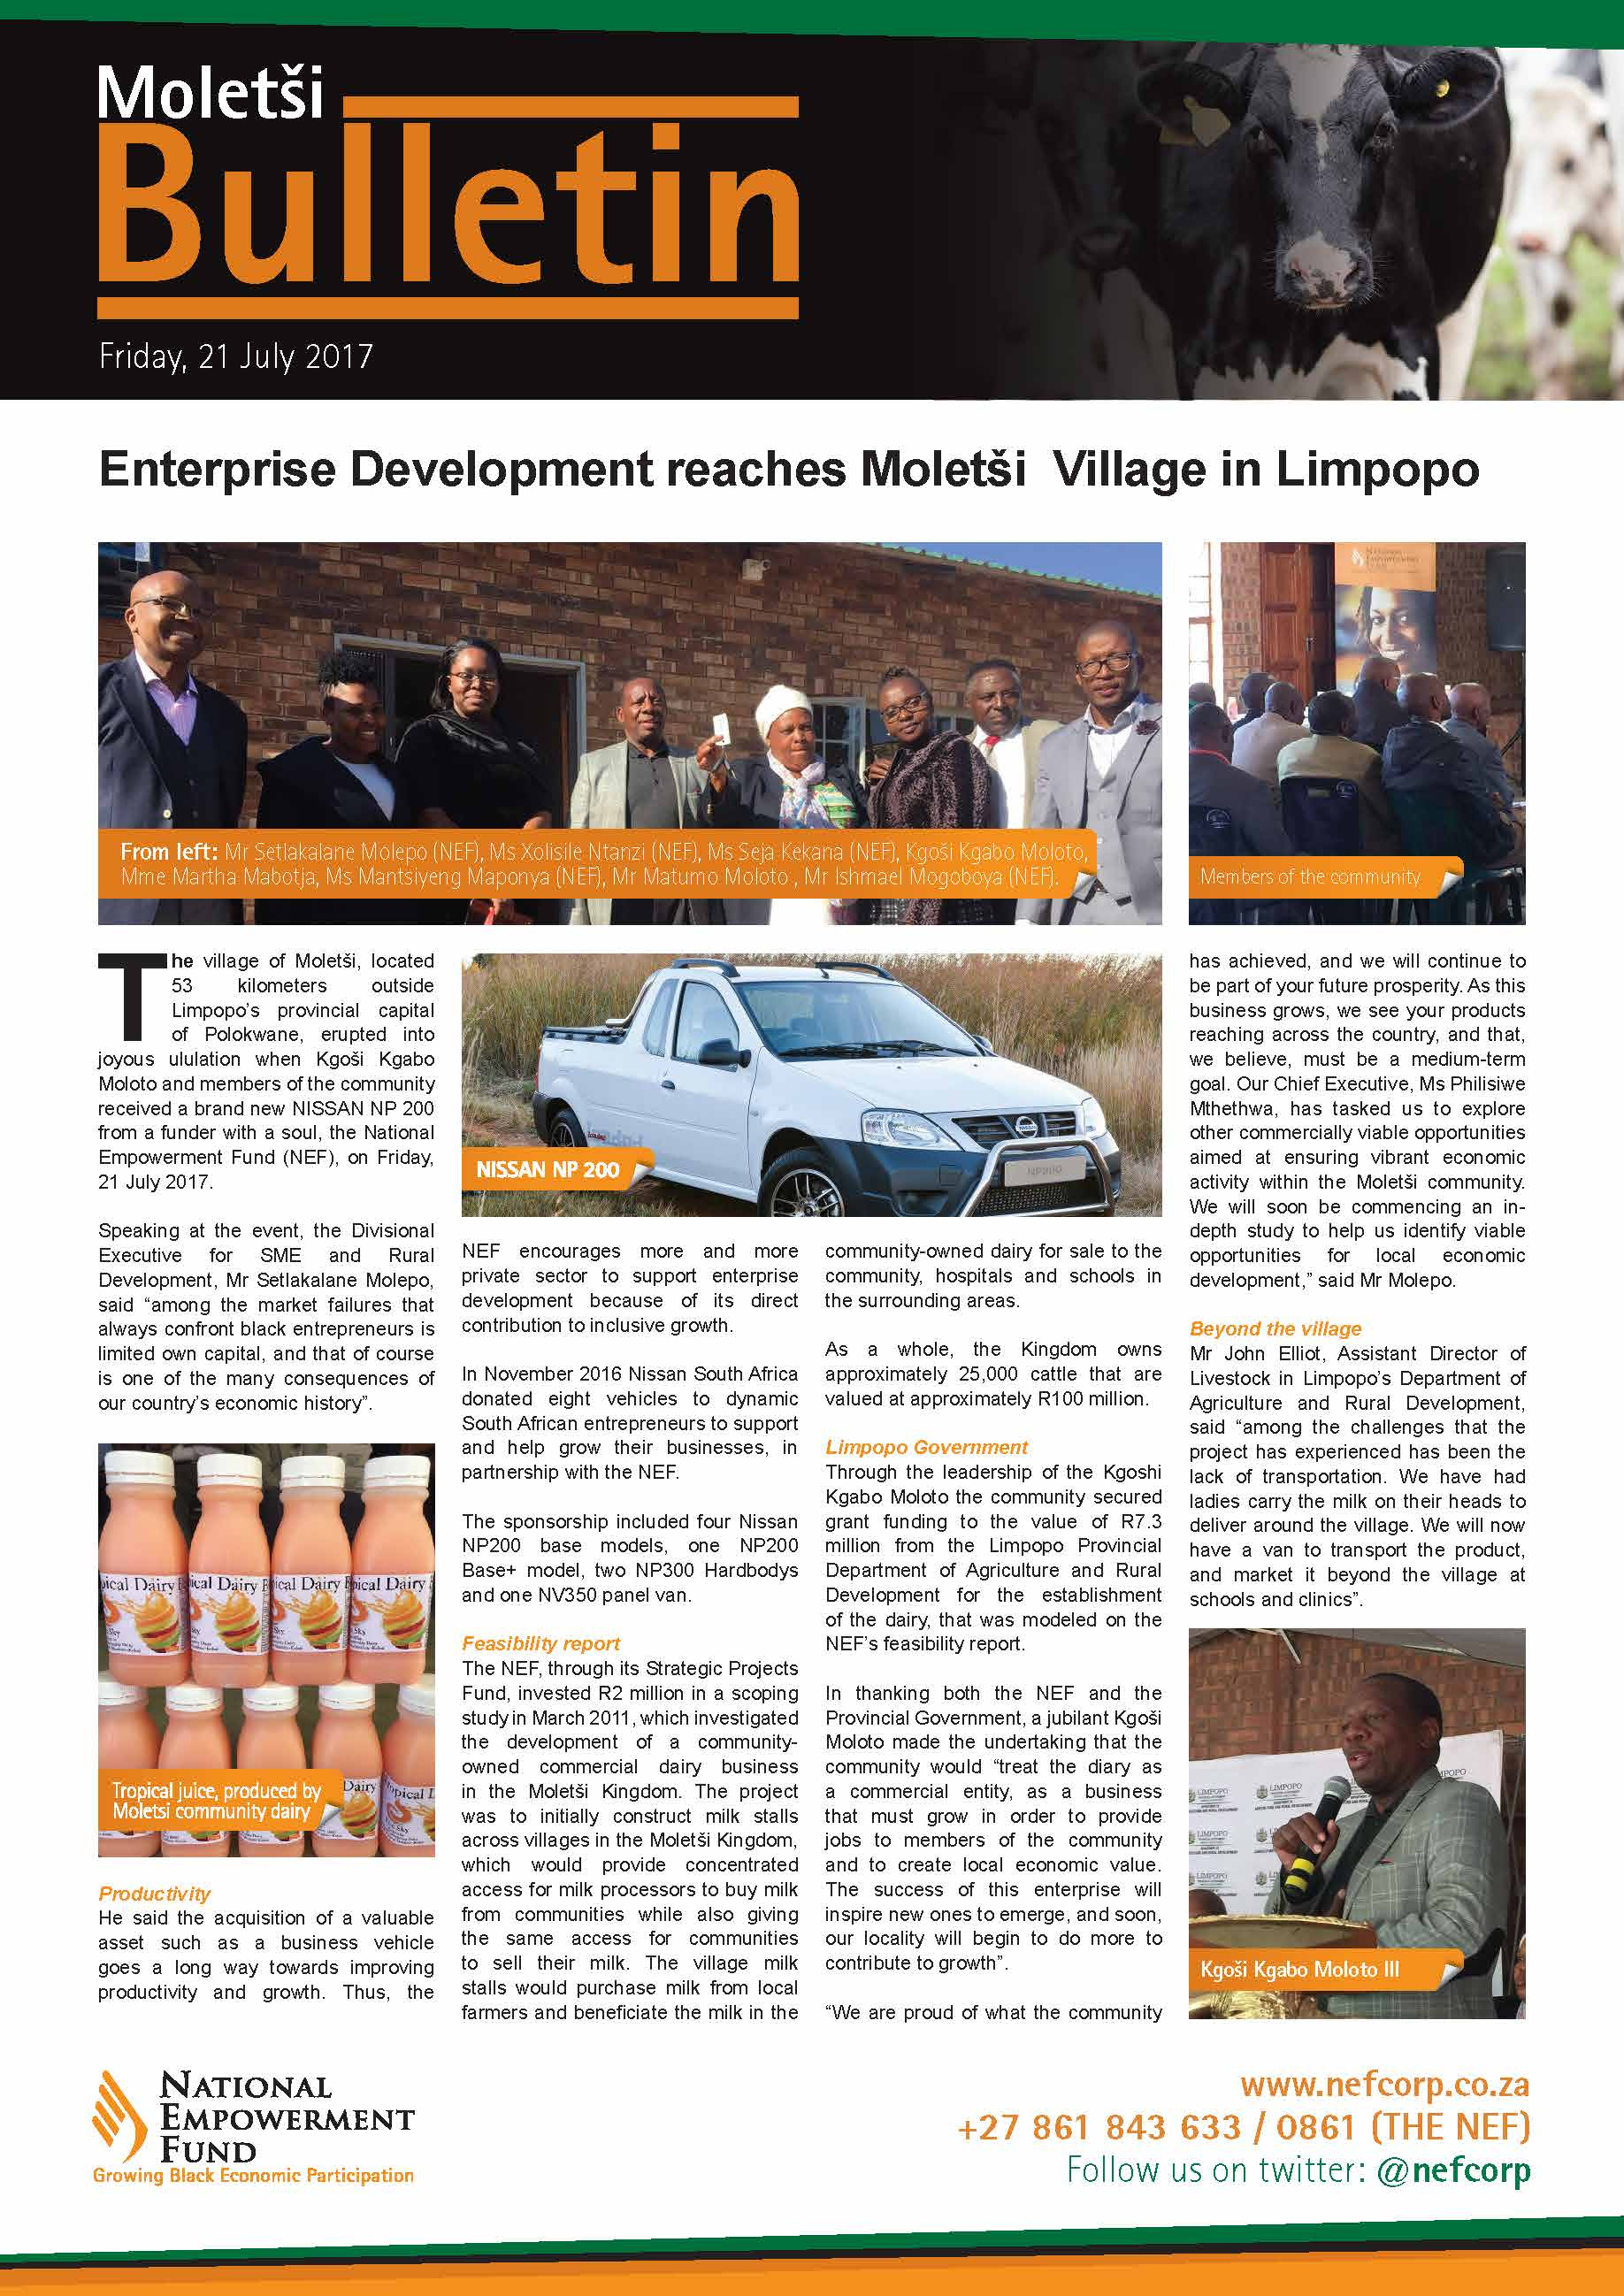 Enterprise Development Reaches Moletši Village In Limpopo